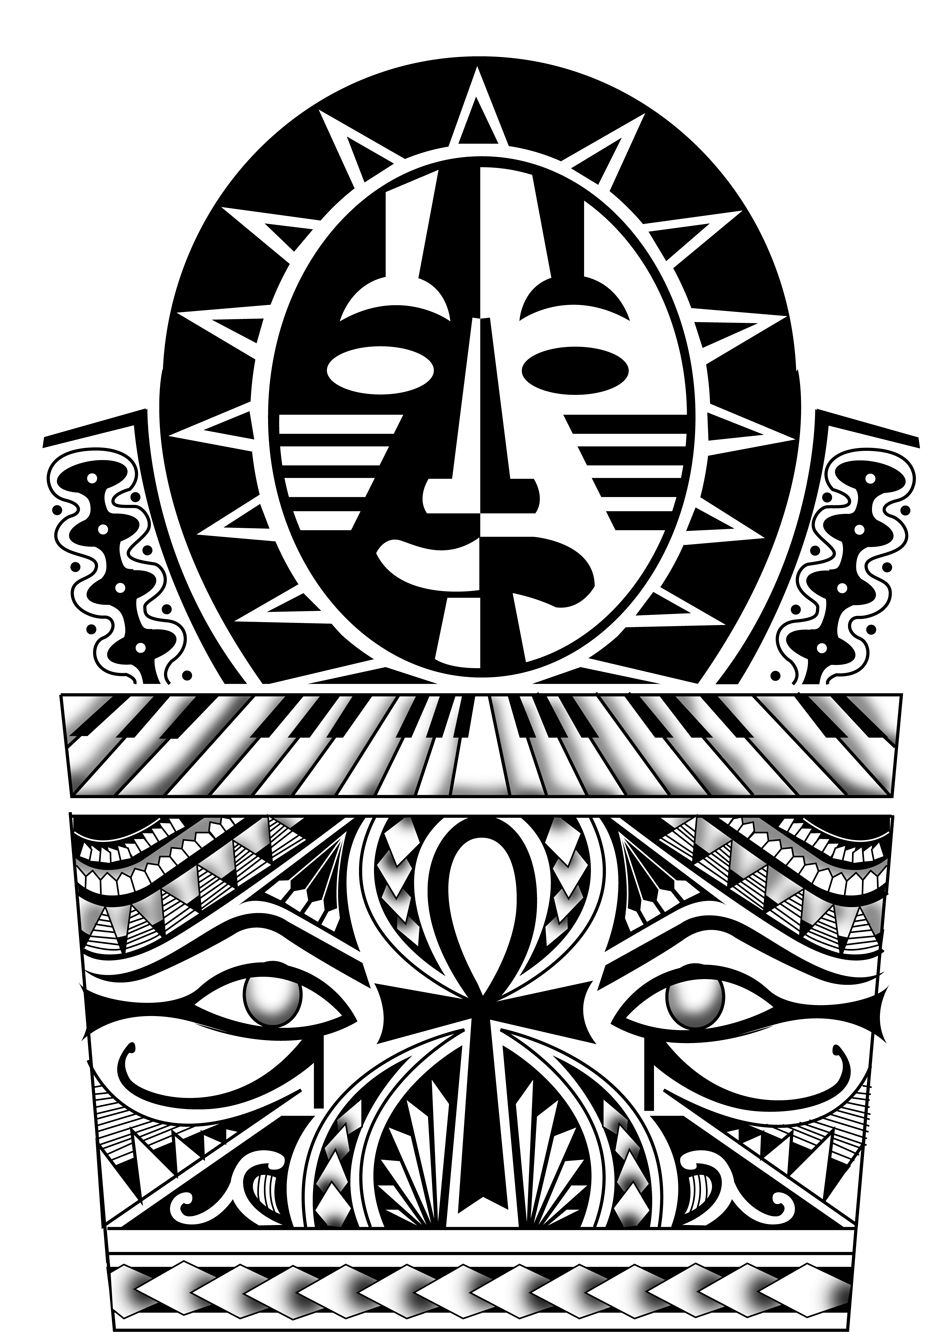 50 Polynesian Style Egyptian Tattoo Design. All rights